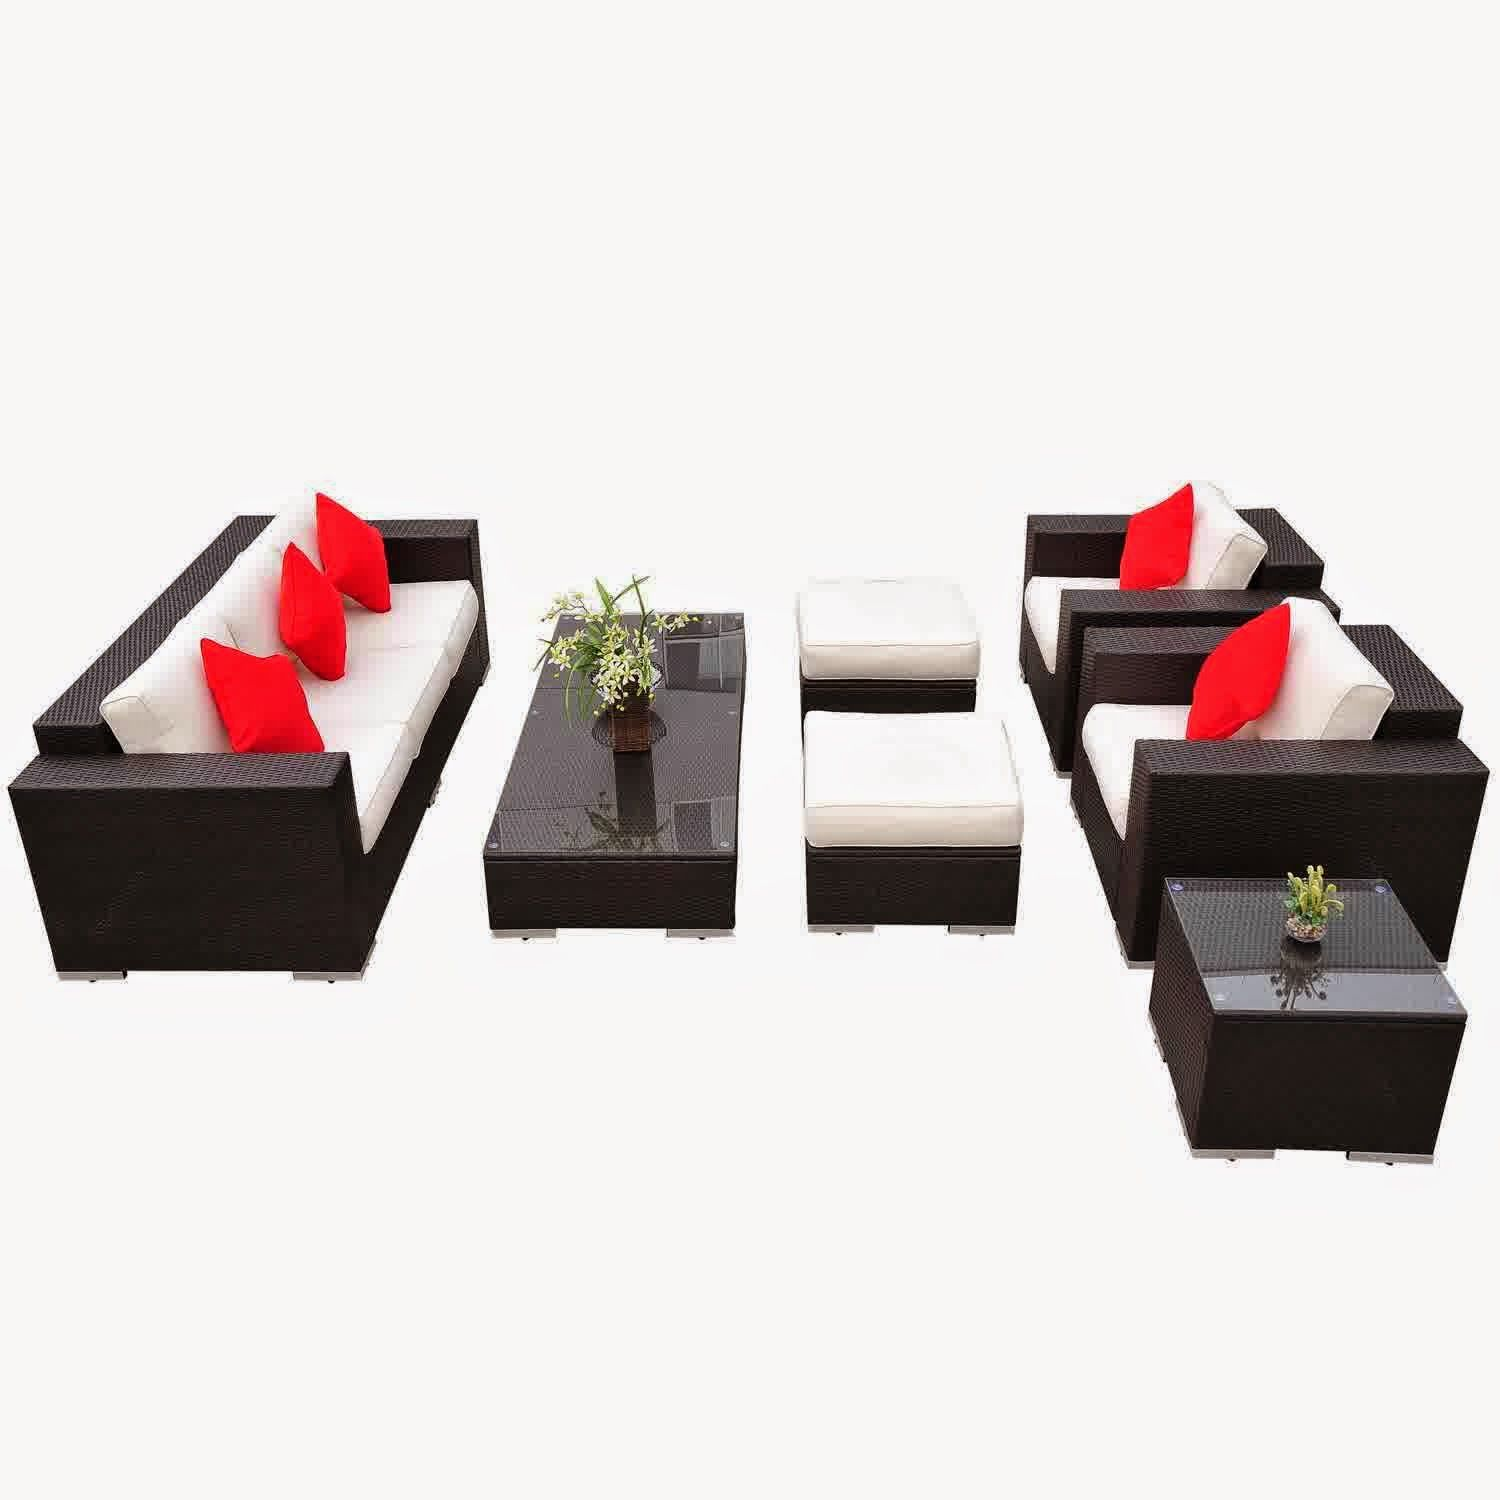 Outsunny pc pe rattan wicker sectional patio sofa furniture set